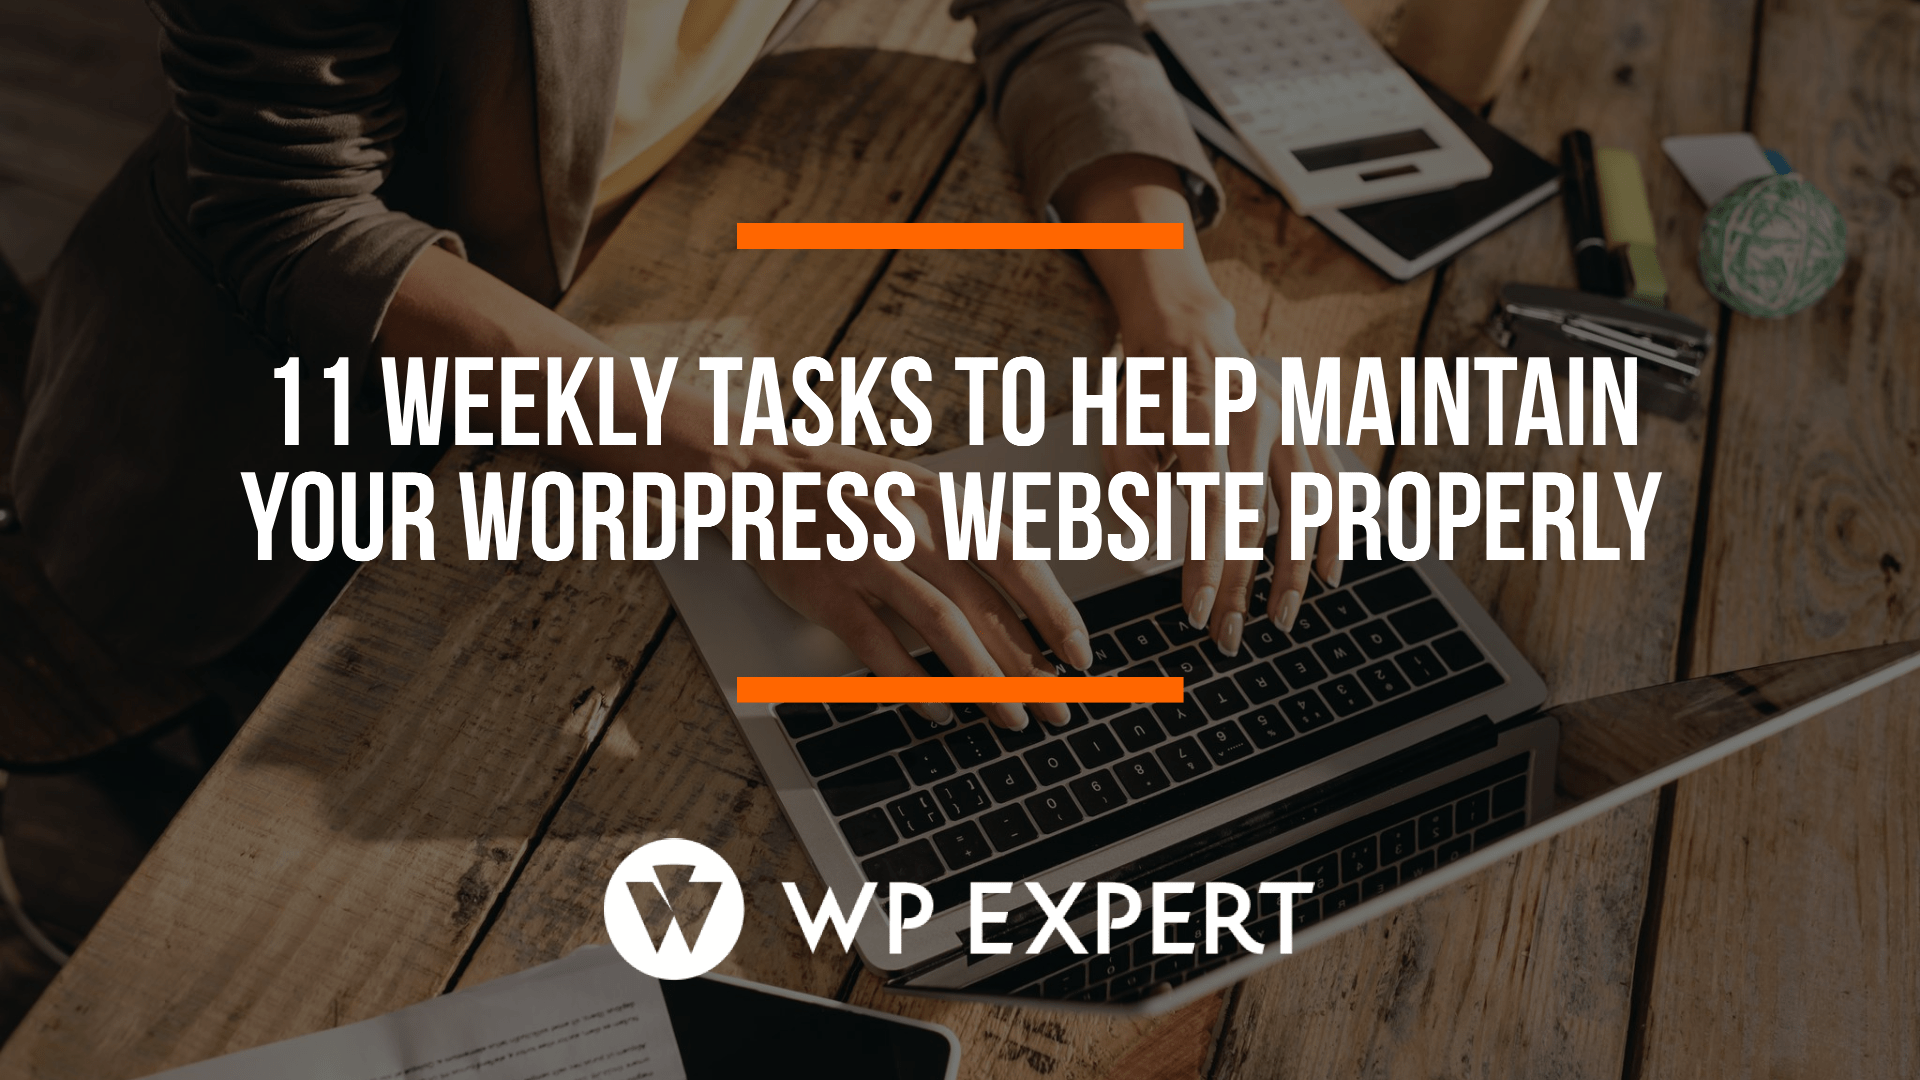 11 Weekly Tasks To Help Maintain Your WordPress Website Properly